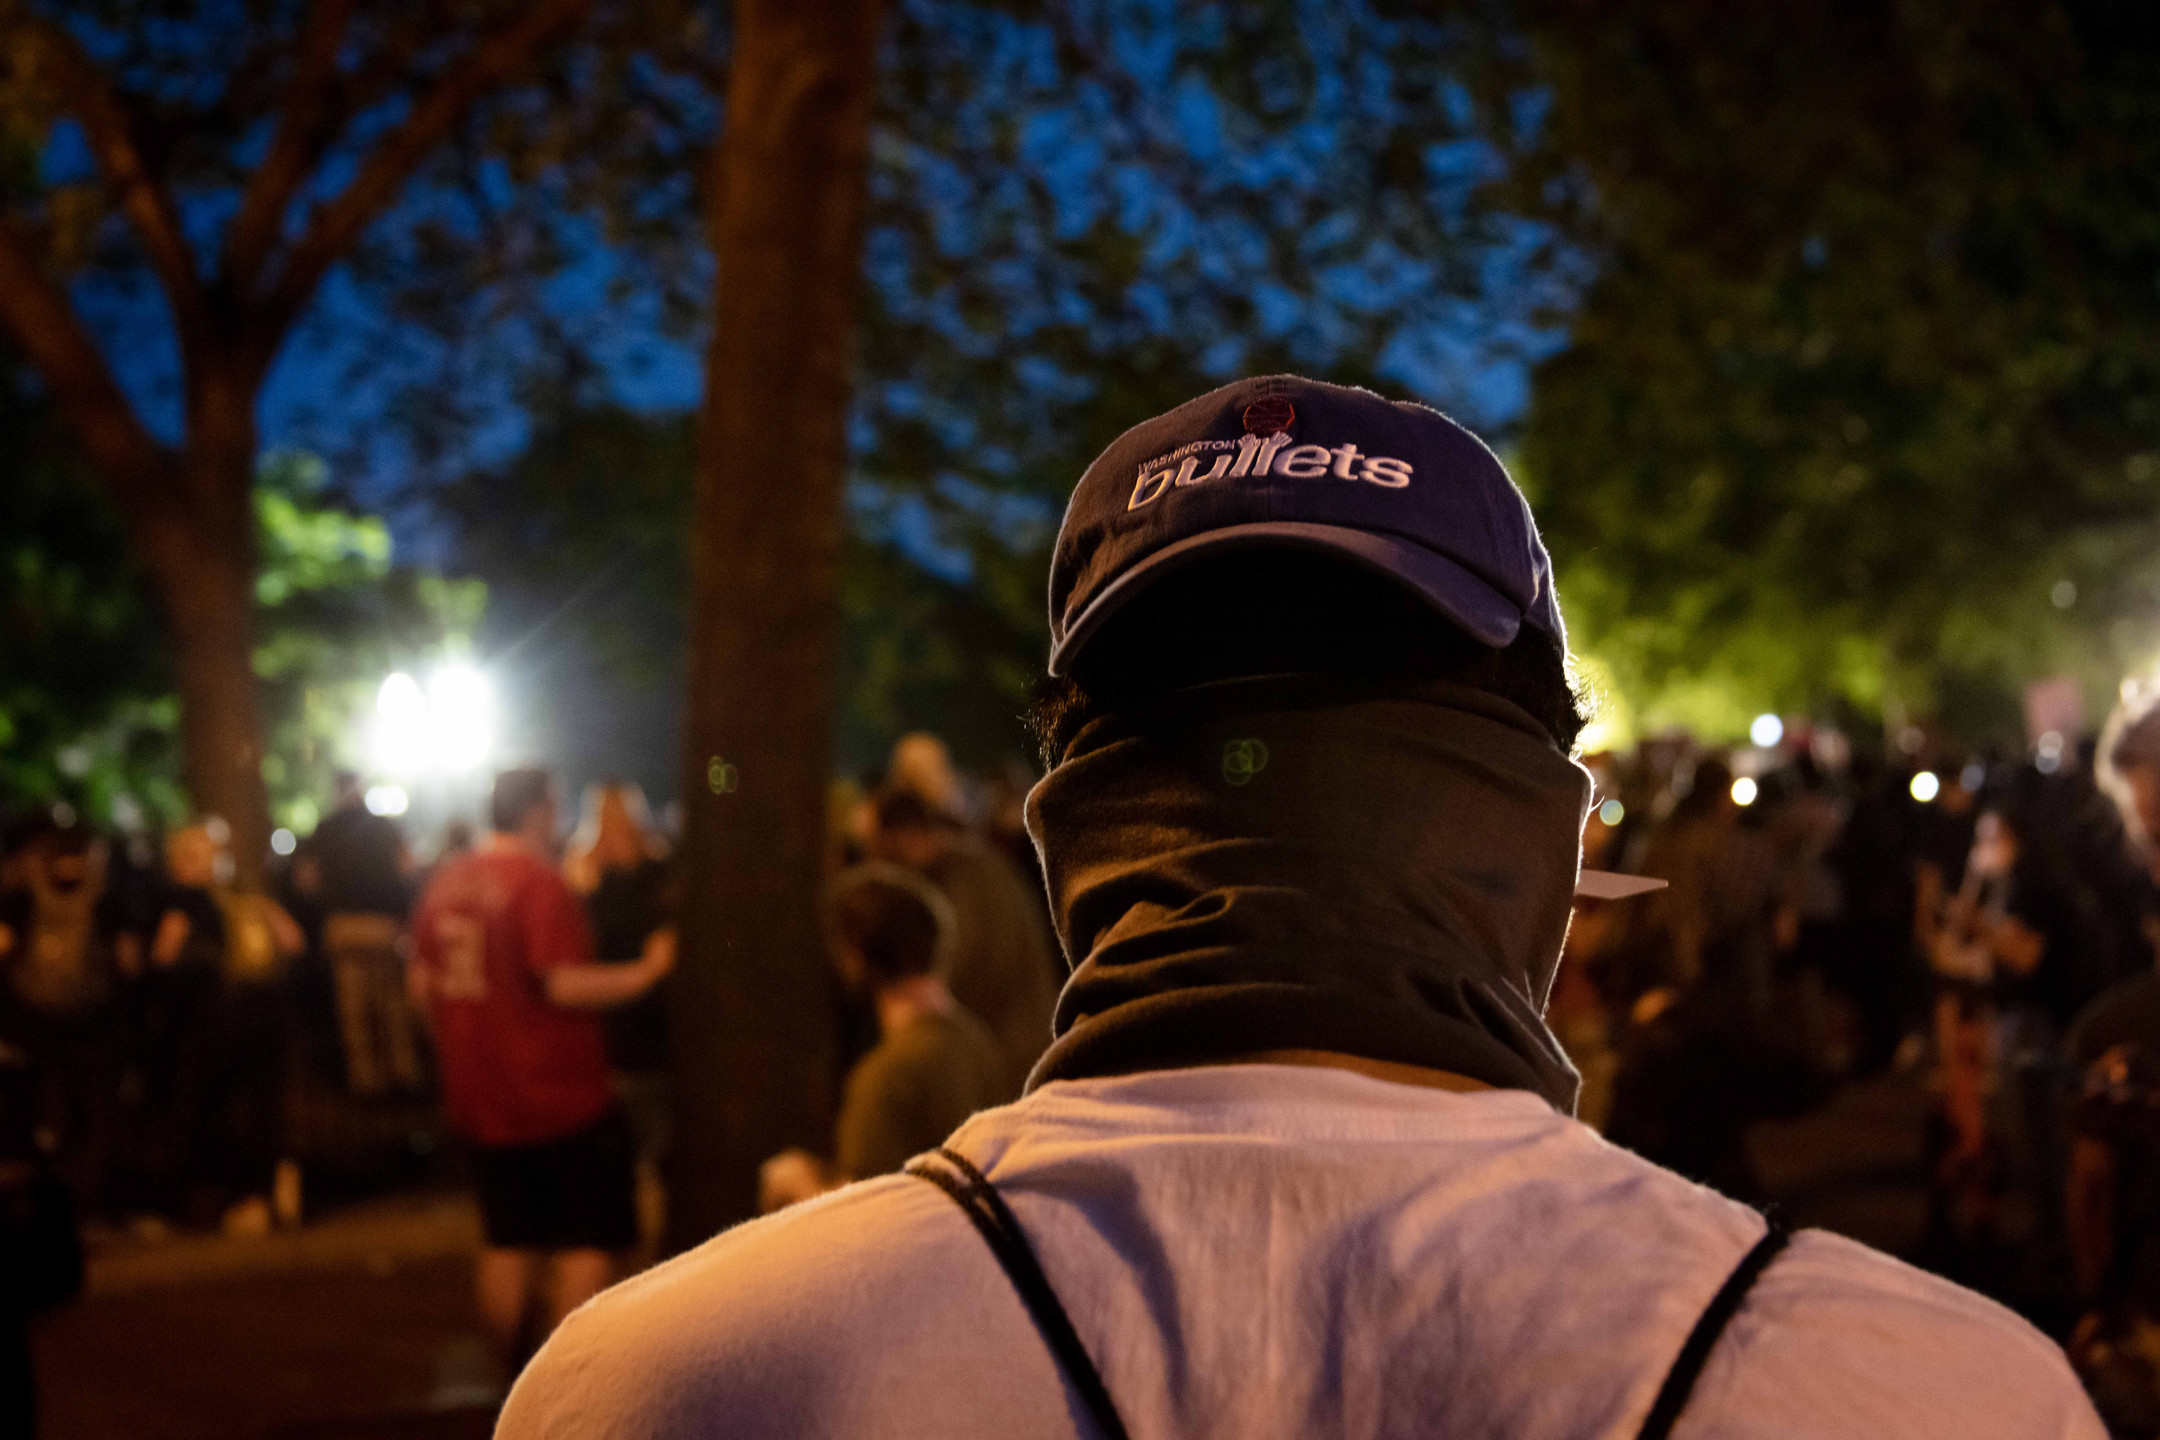 A protester outside the White House wears a Washington Bullets hat. The Bullets were D.C.'s basketball team before the name was deemed too violent.